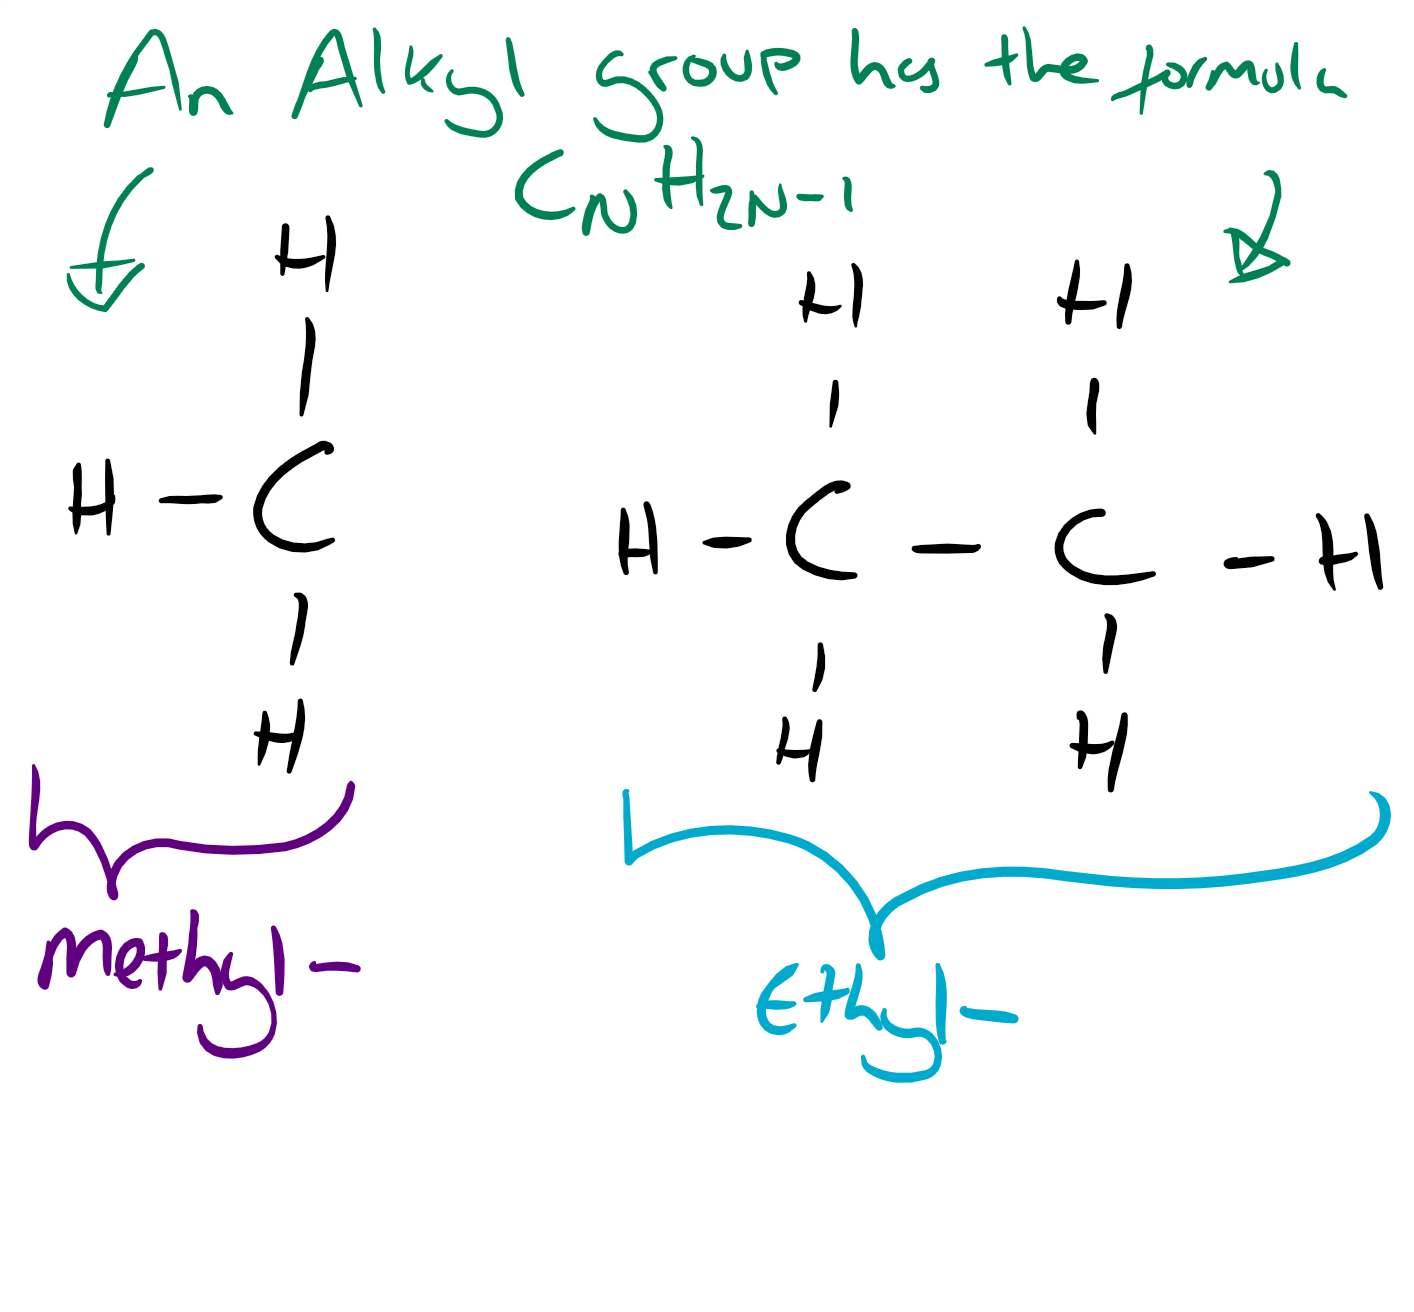 Group 3 Treatment Options Btt Sose 2017 Tum Wiki In Fact With Only A Small Addition This Circuit Is Capable Of Alkylation The Any Molecule Following Chemical Formula Cnh2n 1 Usually Smaller Molecules Form Such As Methyl